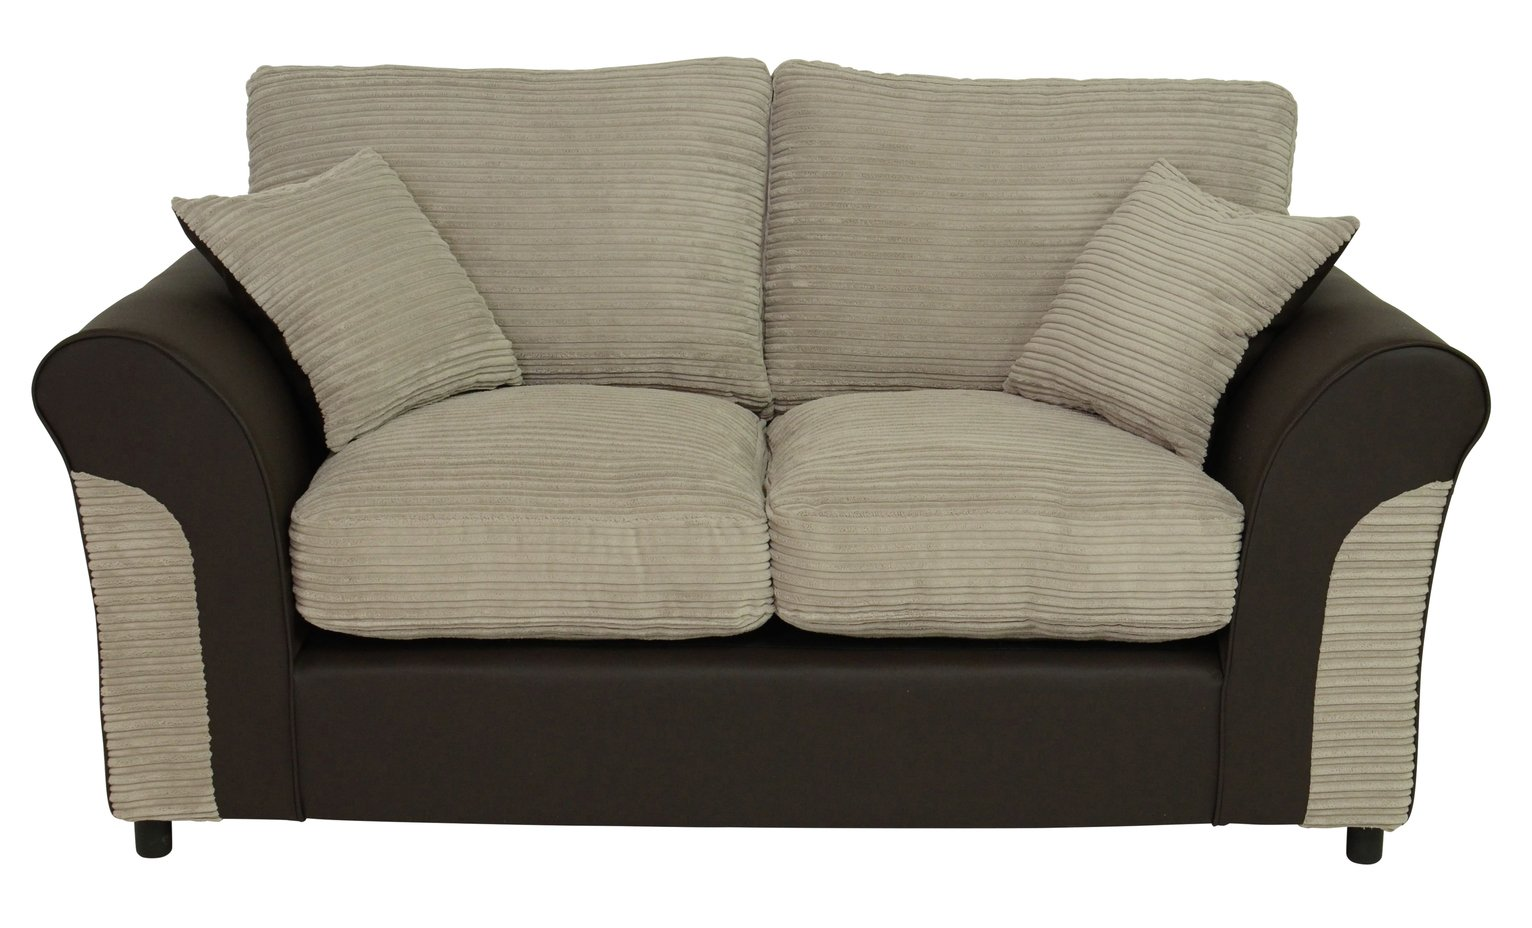 Argos Home Harry 2 Seater Fabric Sofabed - Mink